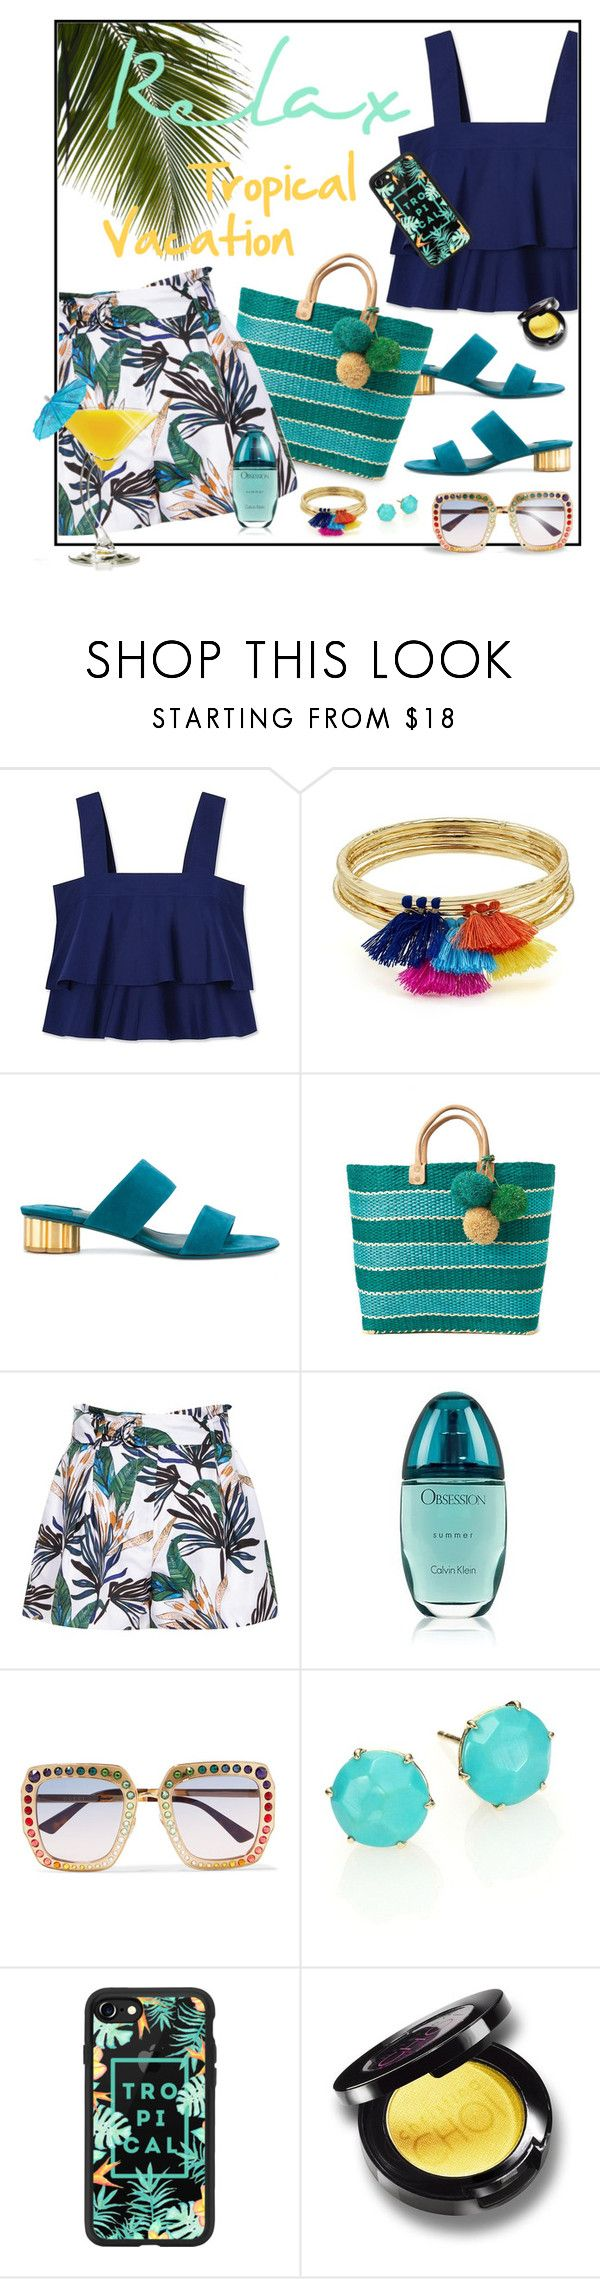 """""""Maldives..."""" by ladychatterley ❤ liked on Polyvore featuring Tory Burch, Aqua, Salvatore Ferragamo, Reiss, TIKI, Gucci, Ippolita, Casetify, ToryBurch and shorts"""